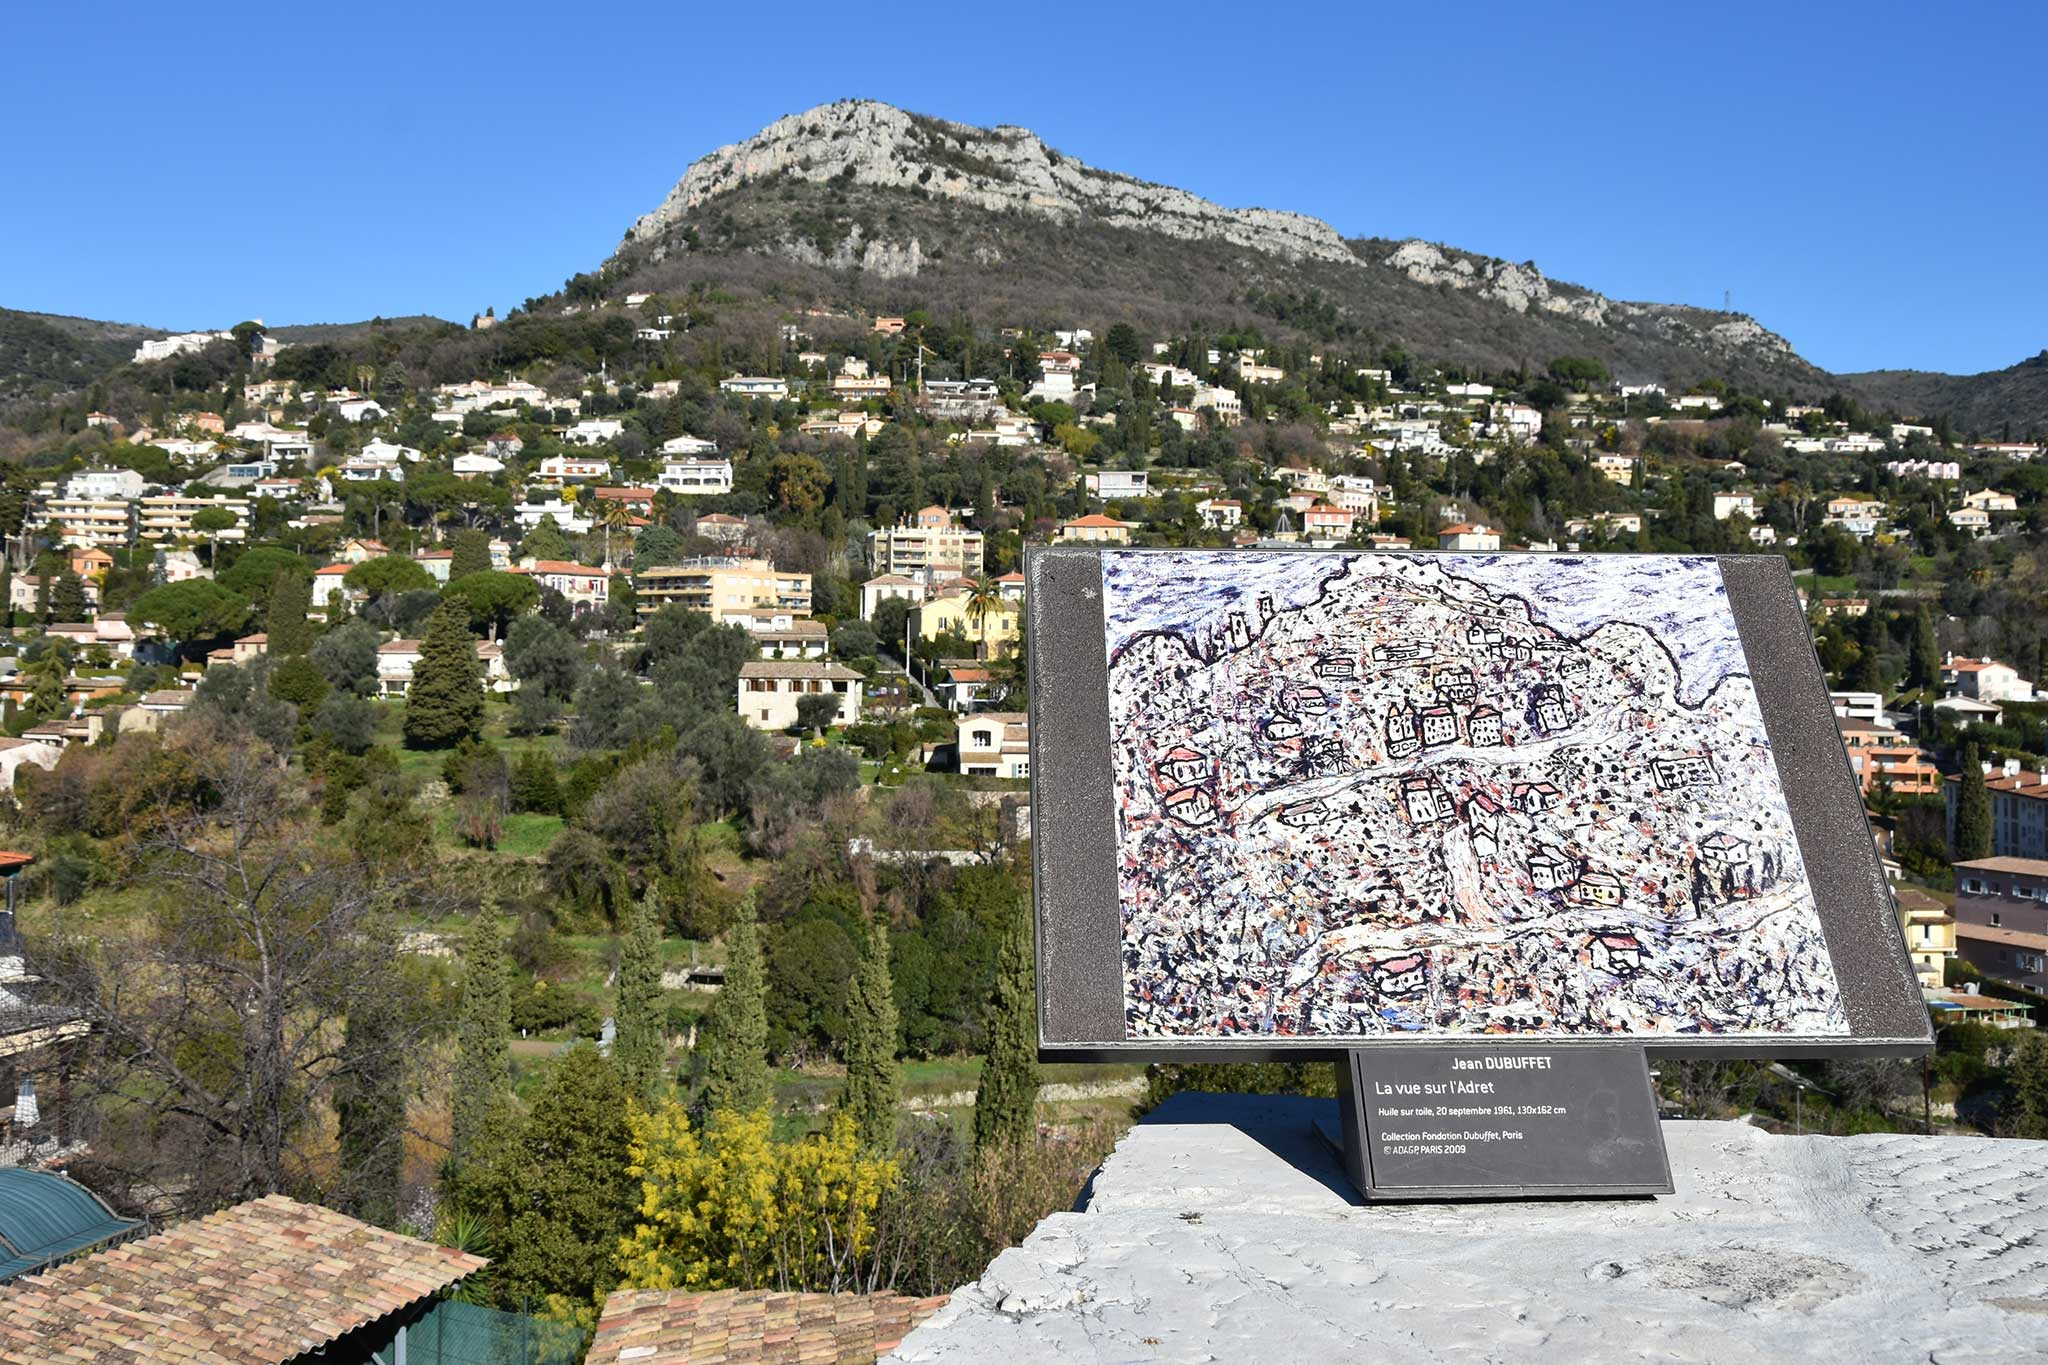 Steve and Carole In Vence - A Painter's Tour Of Vence